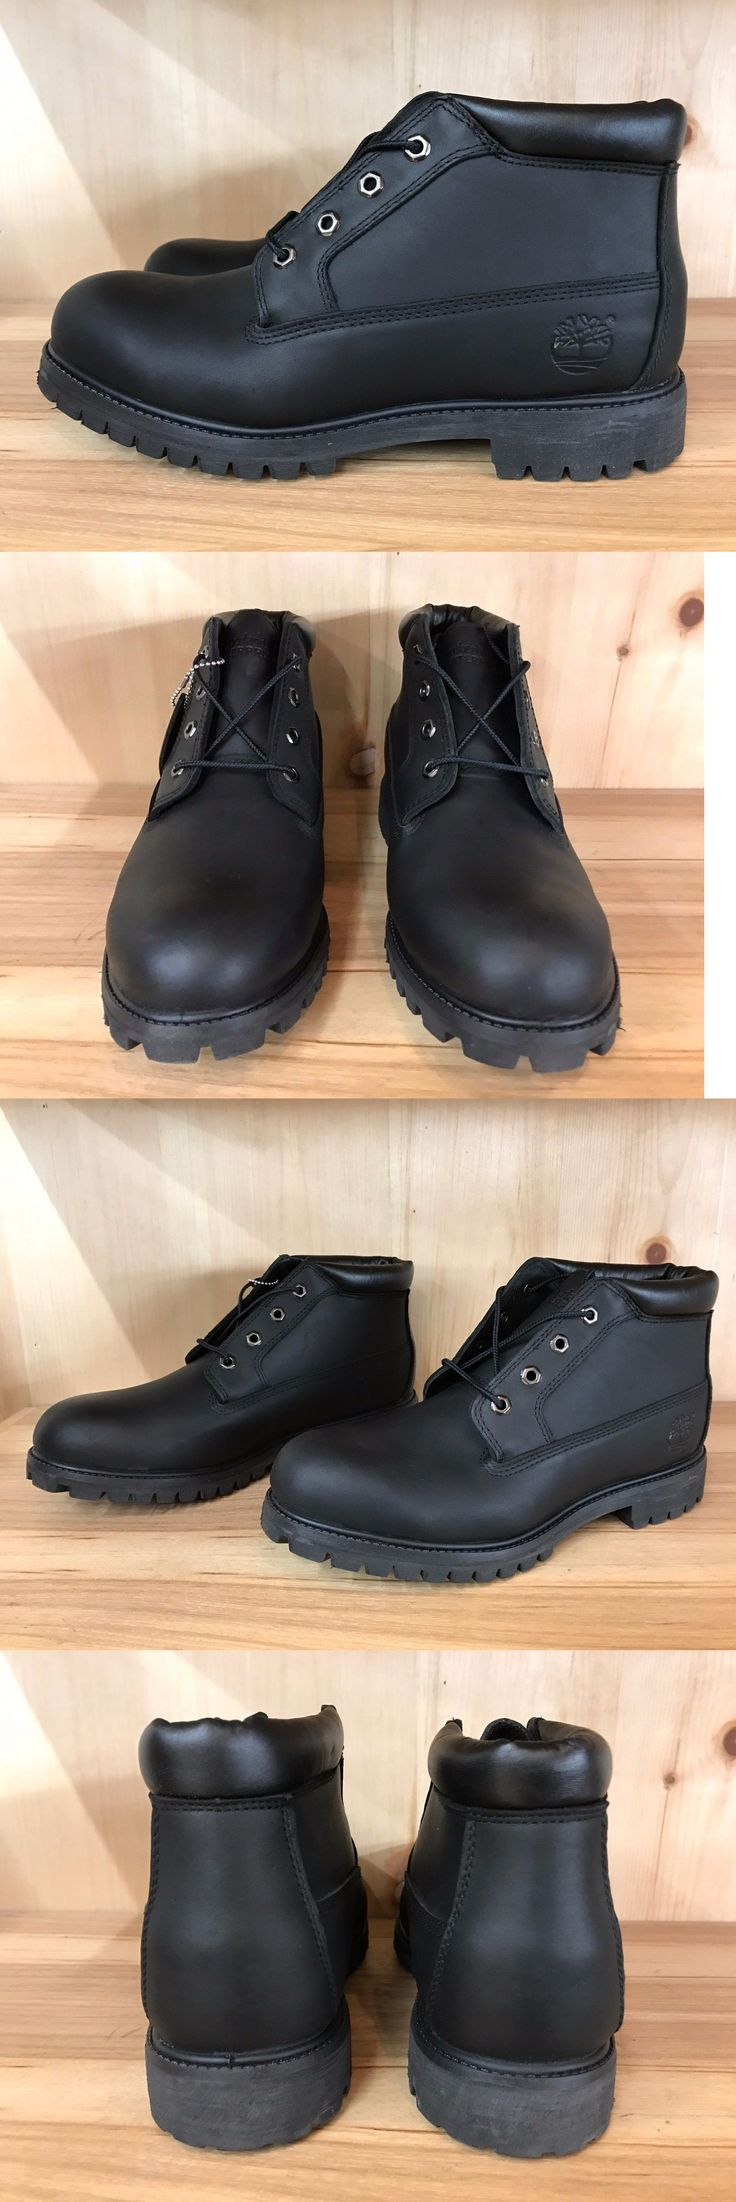 Boots 11498: Timberland Chukka Boot Black Leather Boots Vintage Size 11 23060 -> BUY IT NOW ONLY: $69.99 on eBay!